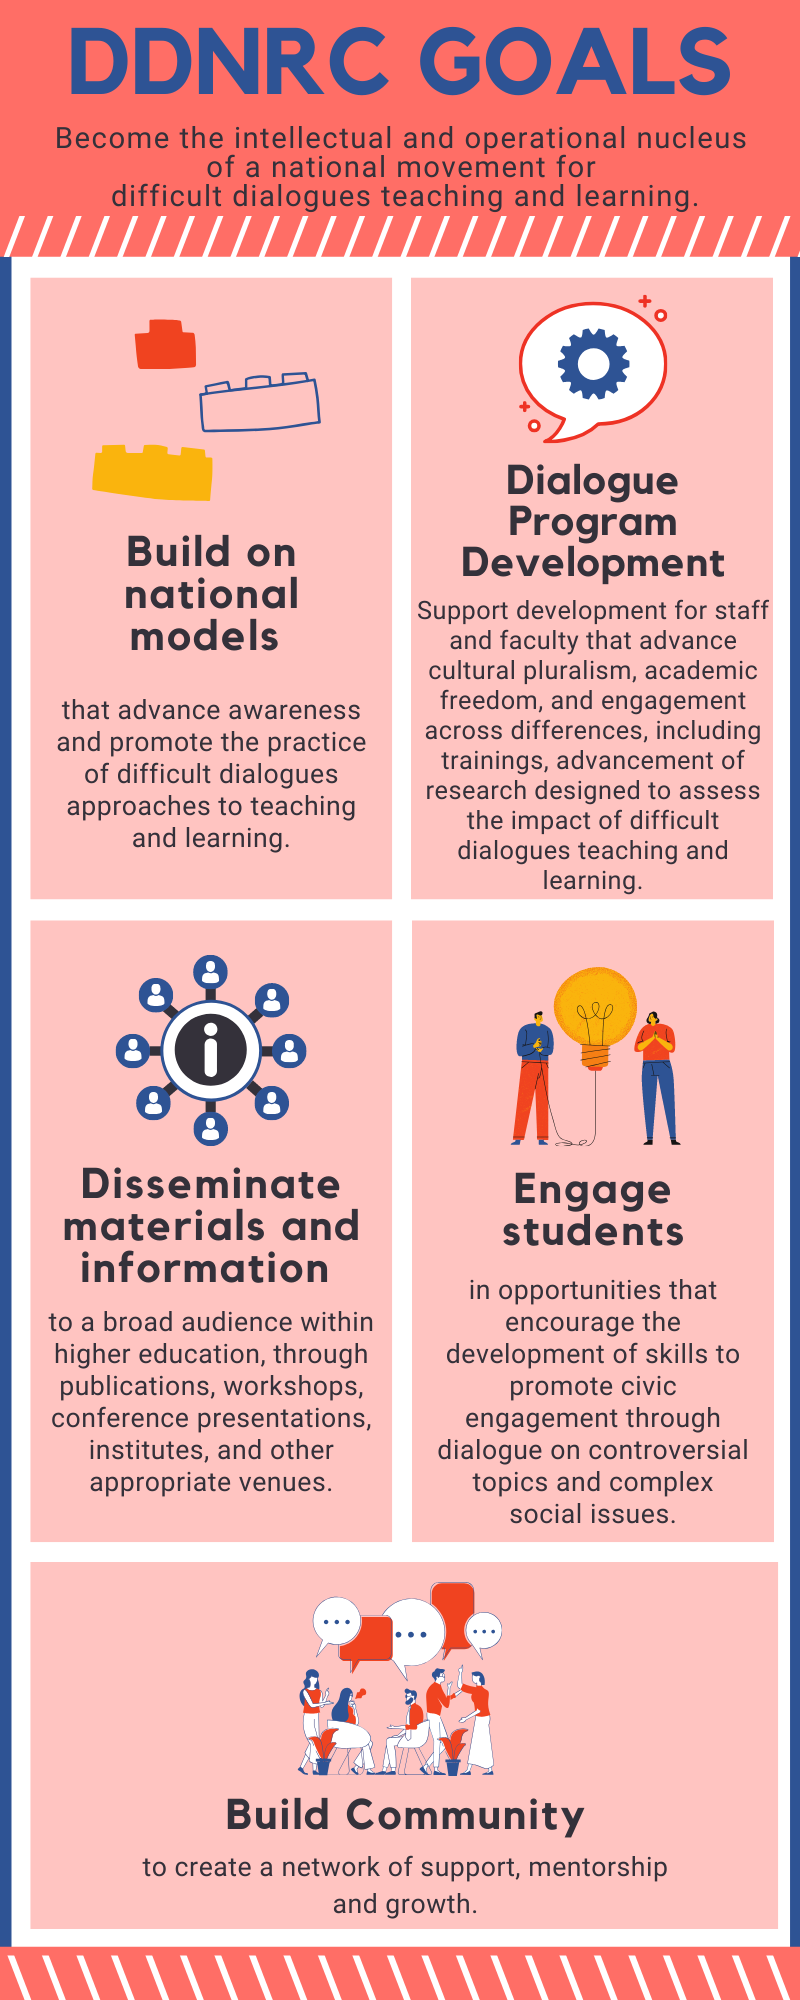 Infographic with a title that reads: DDNRC Goals: Become the intellectual and operational nucleus of a national movement for difficult dialogues teaching and learning. 1st Image is an illustration of building blocks with accompanying text: Build on national models that advance awareness and promote the practice of difficult dialogues approaches to teaching and learning. Second image: word bubble with a gear in it with accompanying text: Dialogue Program Development: support development of staff and faculty that advance cultural pluralism, academic freedom, and engagement across differences, including trainings, advancement of research designed to assess the impact of difficult dialogues teaching and learning. Third image: web of people connected with an \